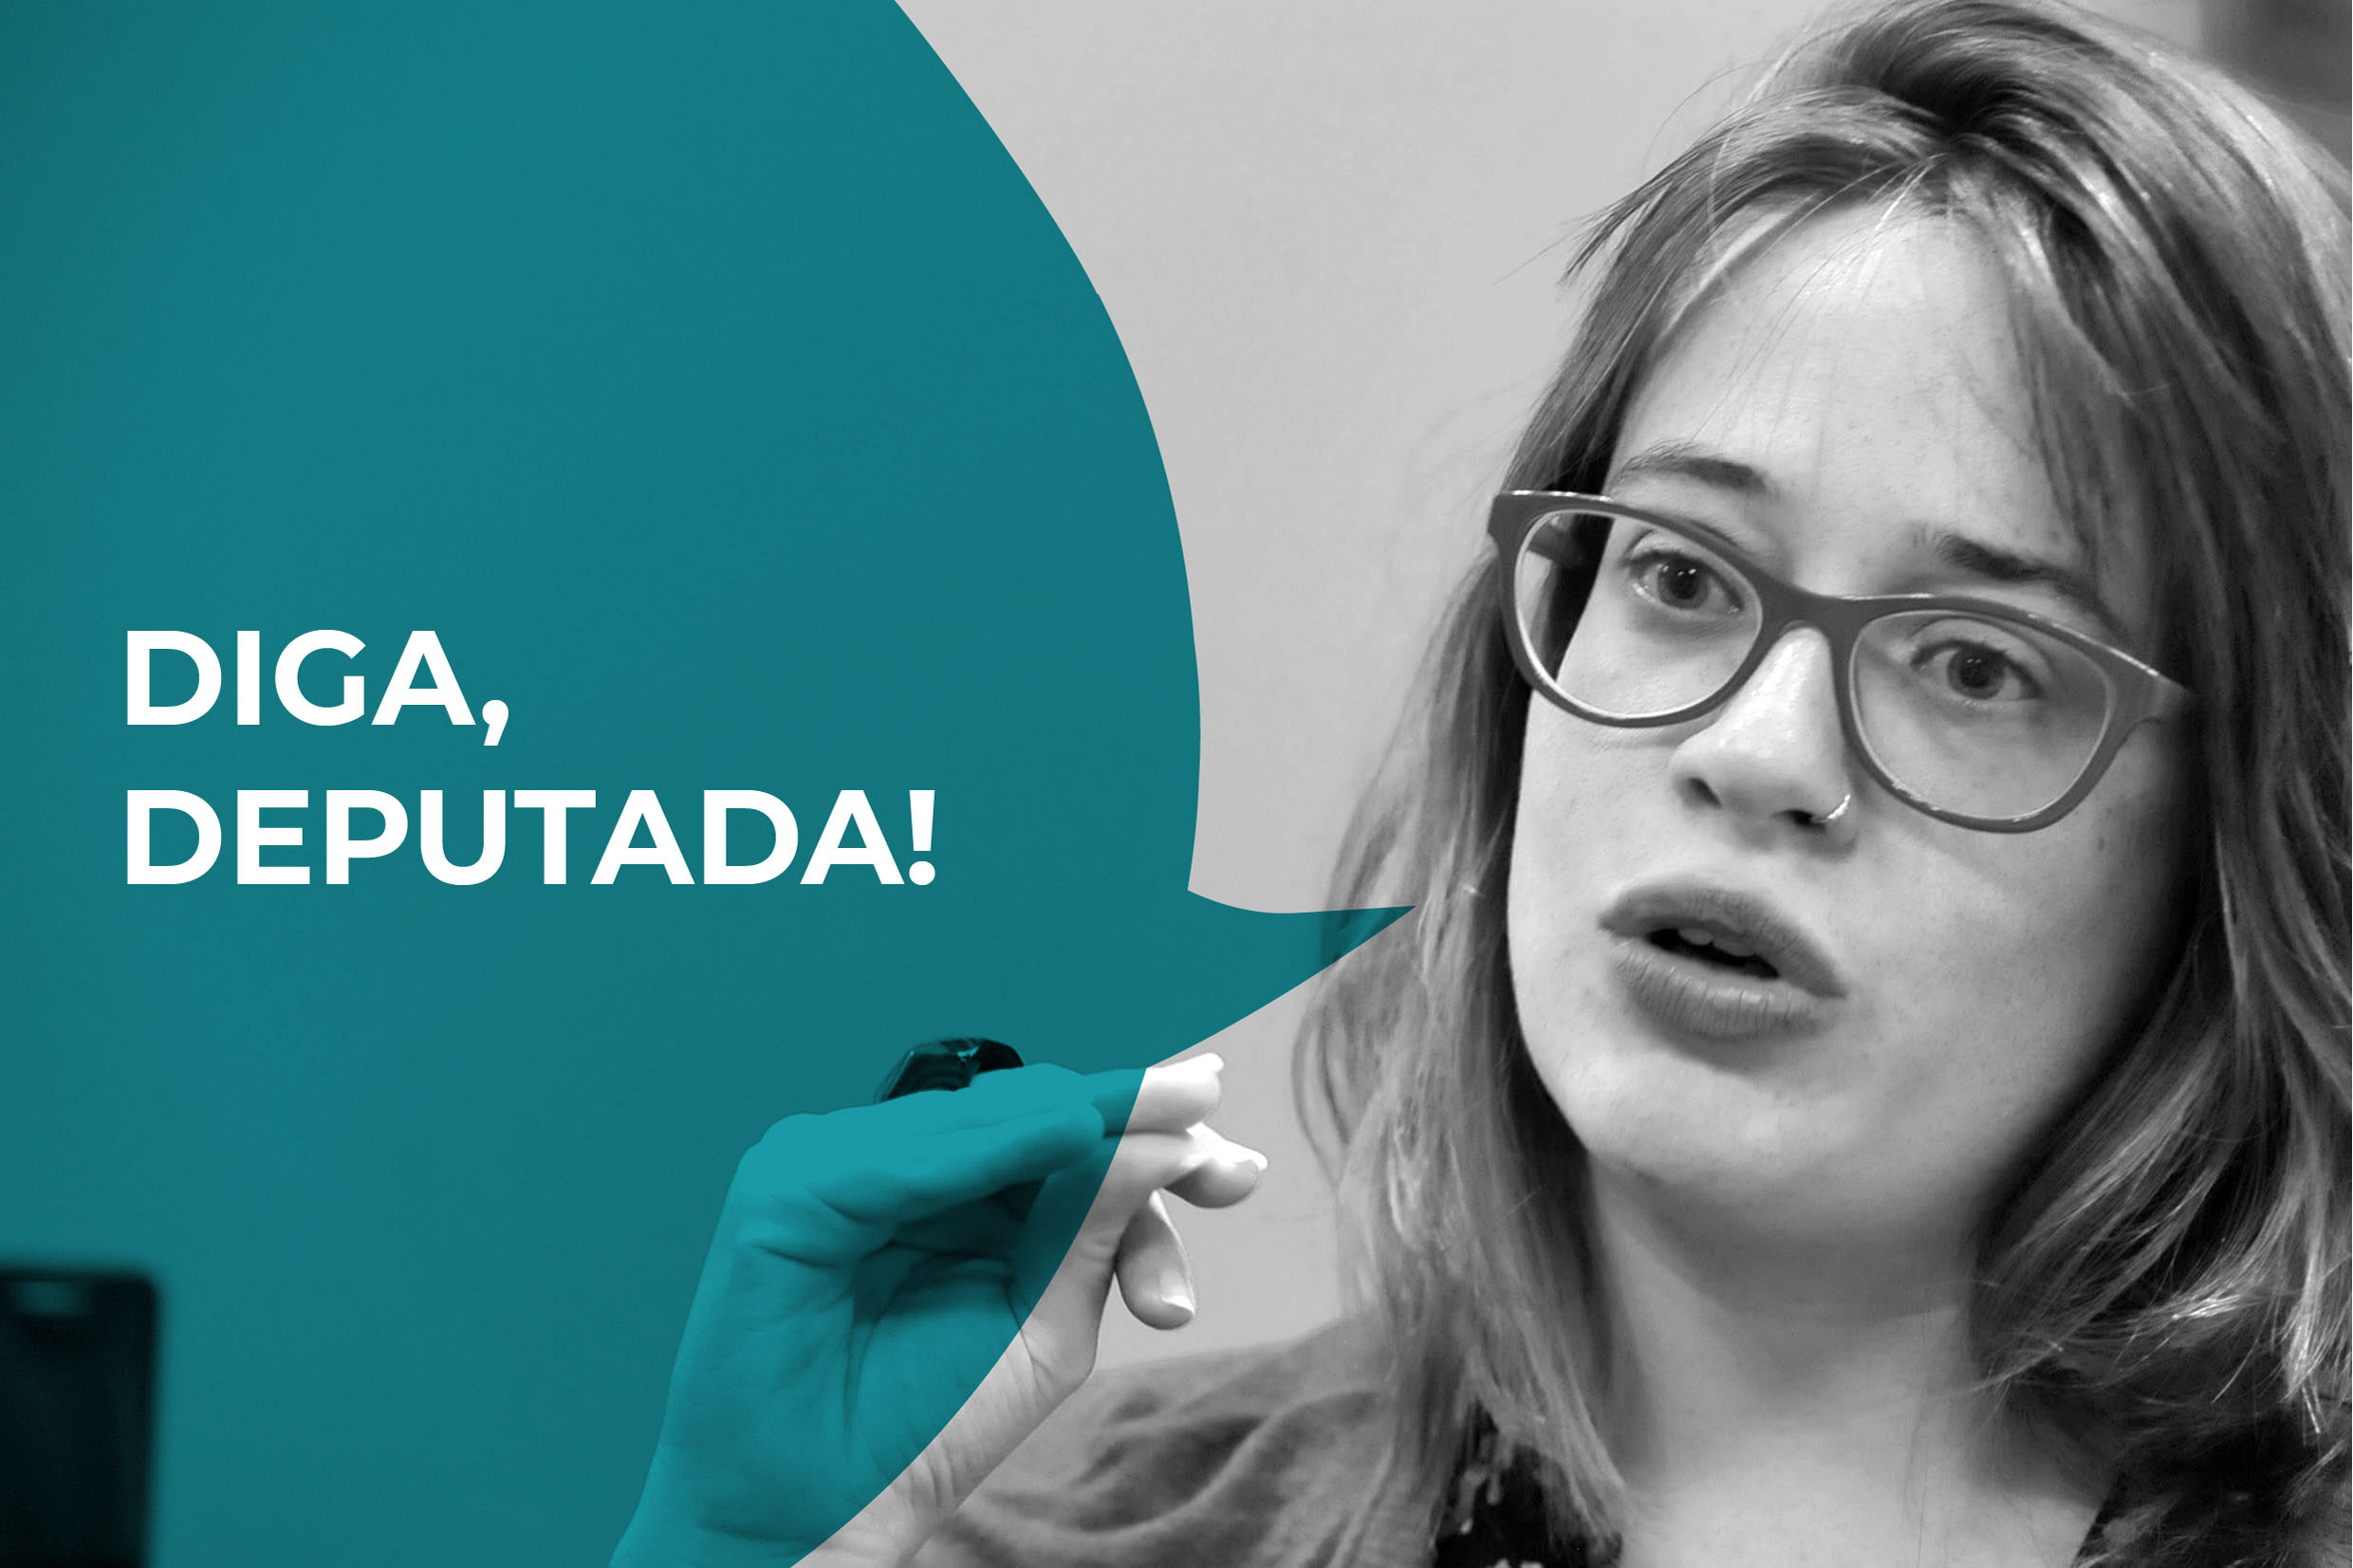 Isa Penna<a style='float:right' href='https://www3.al.sp.gov.br/repositorio/noticia/N-08-2019/fg237859.jpg' target=_blank><img src='/_img/material-file-download-white.png' width='14px' alt='Clique para baixar a imagem'></a>